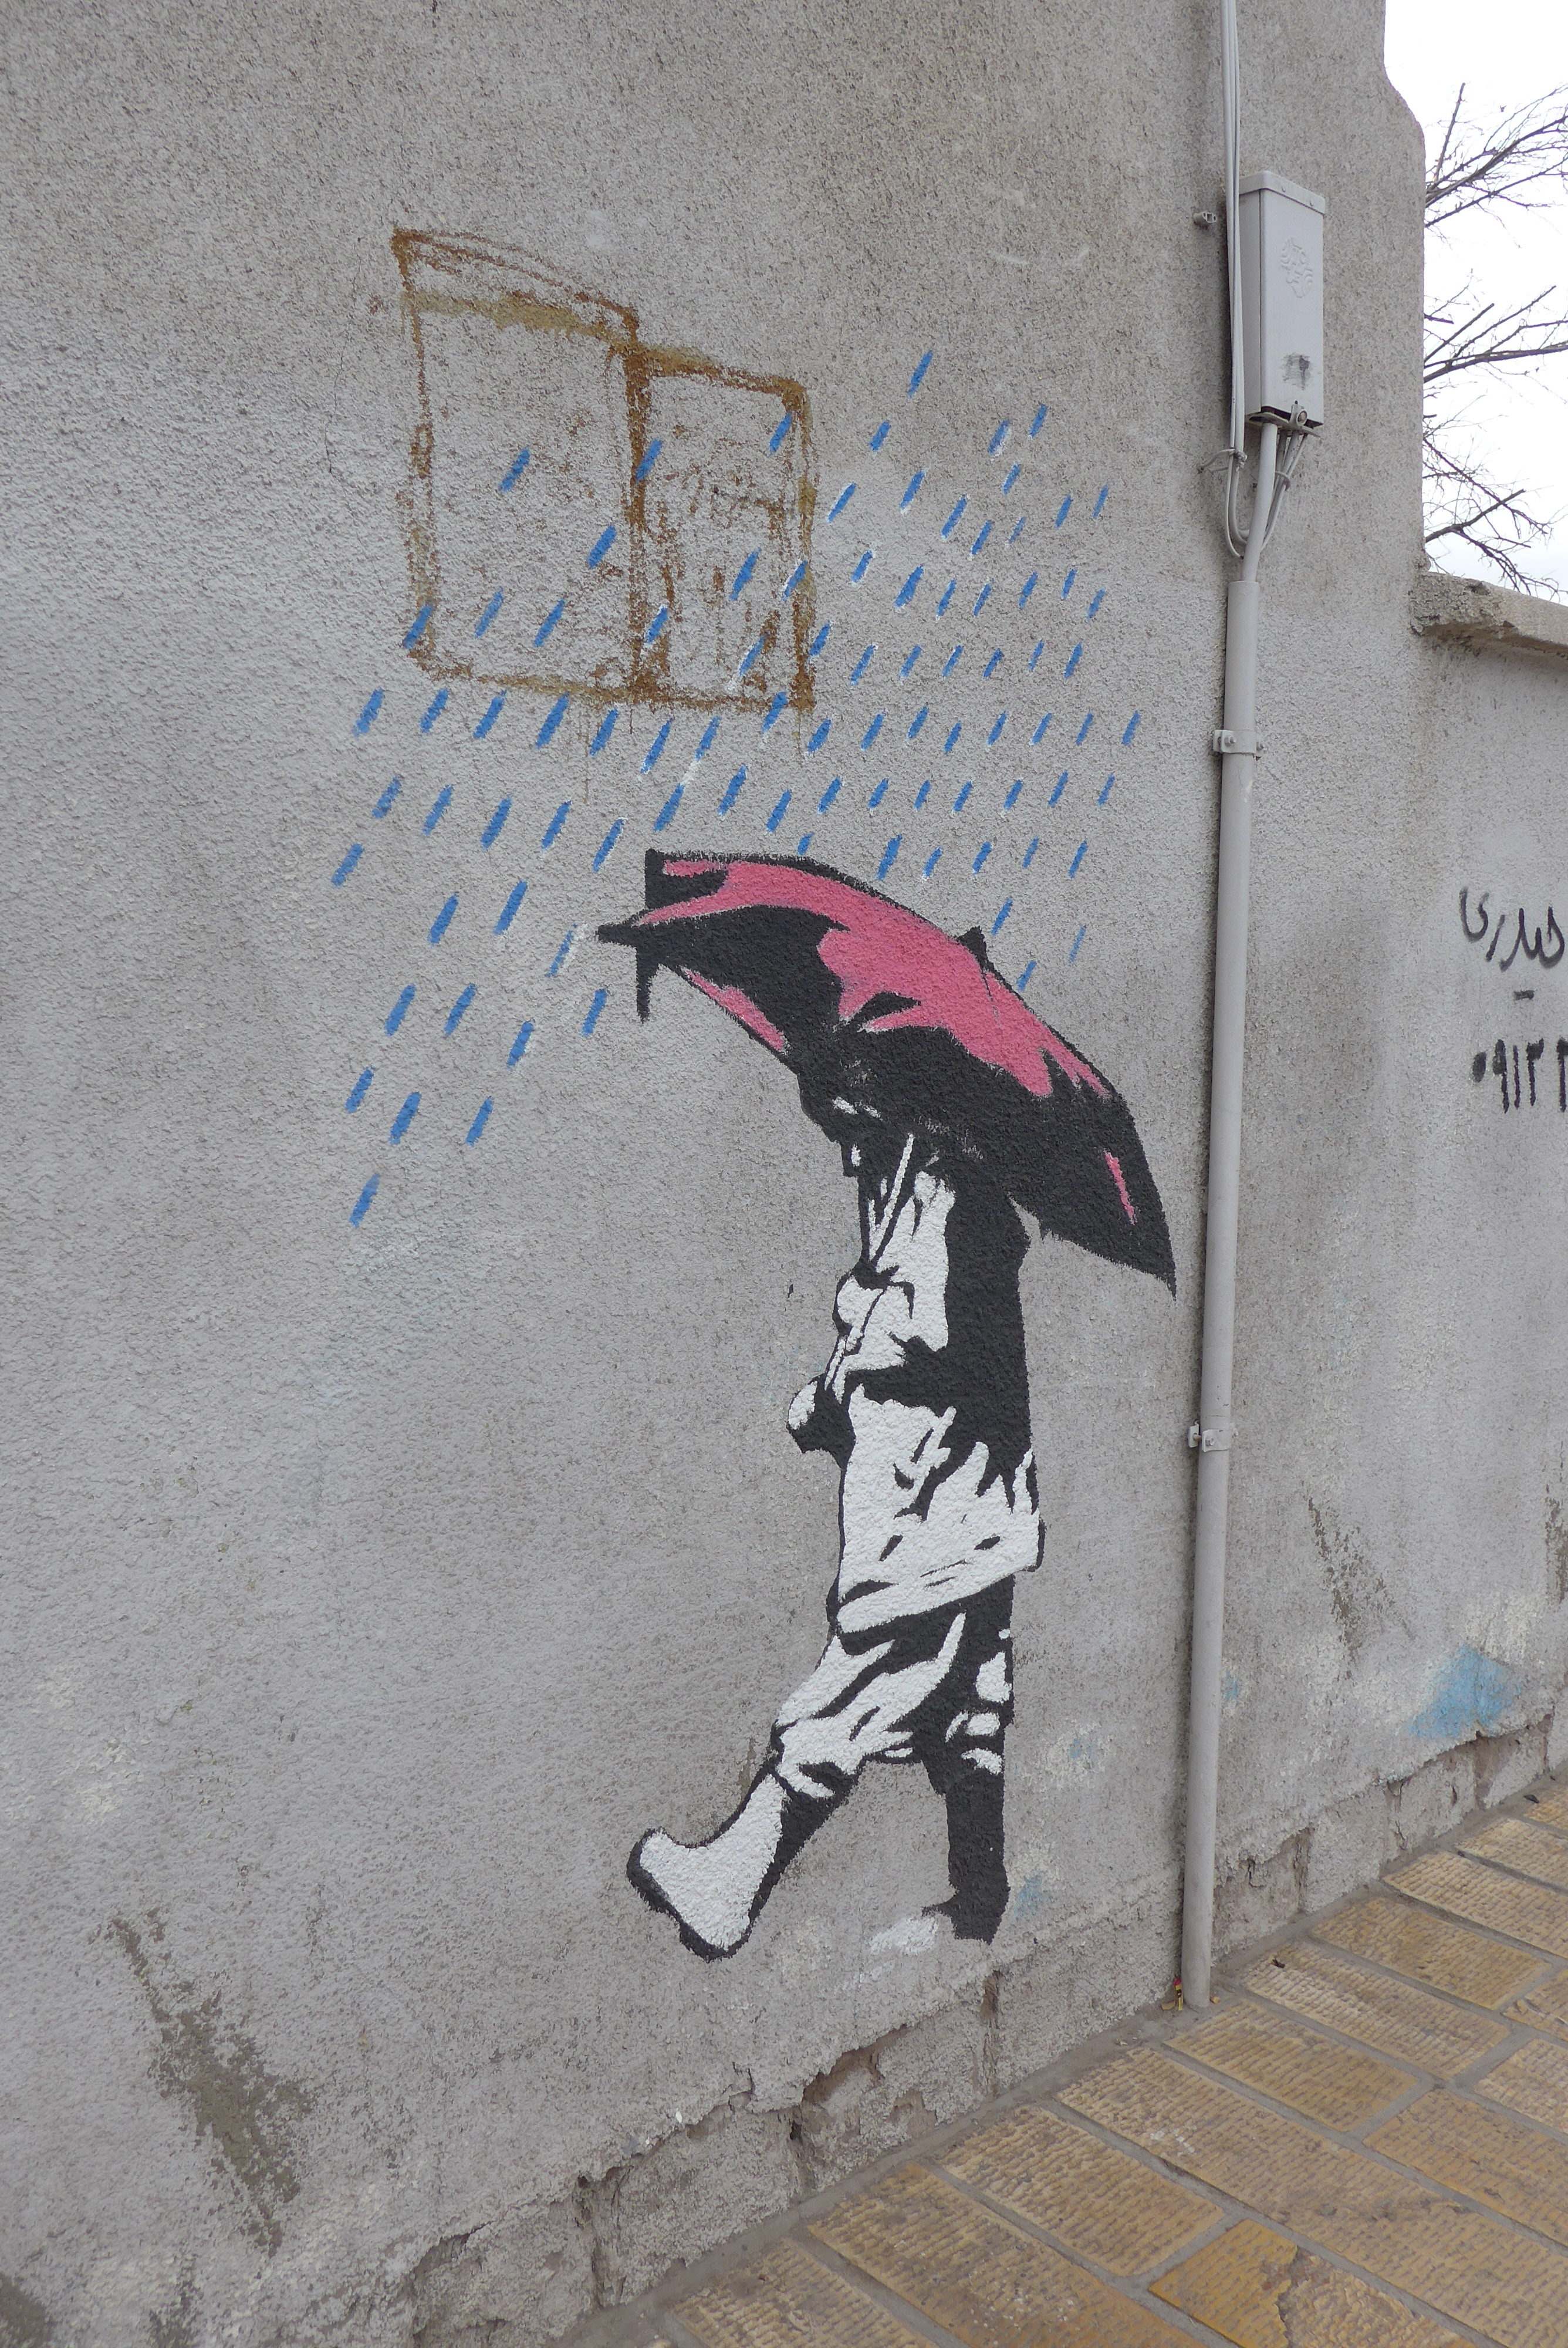 A Bansky? Probably not but Iranians seem to love to paint the houses!